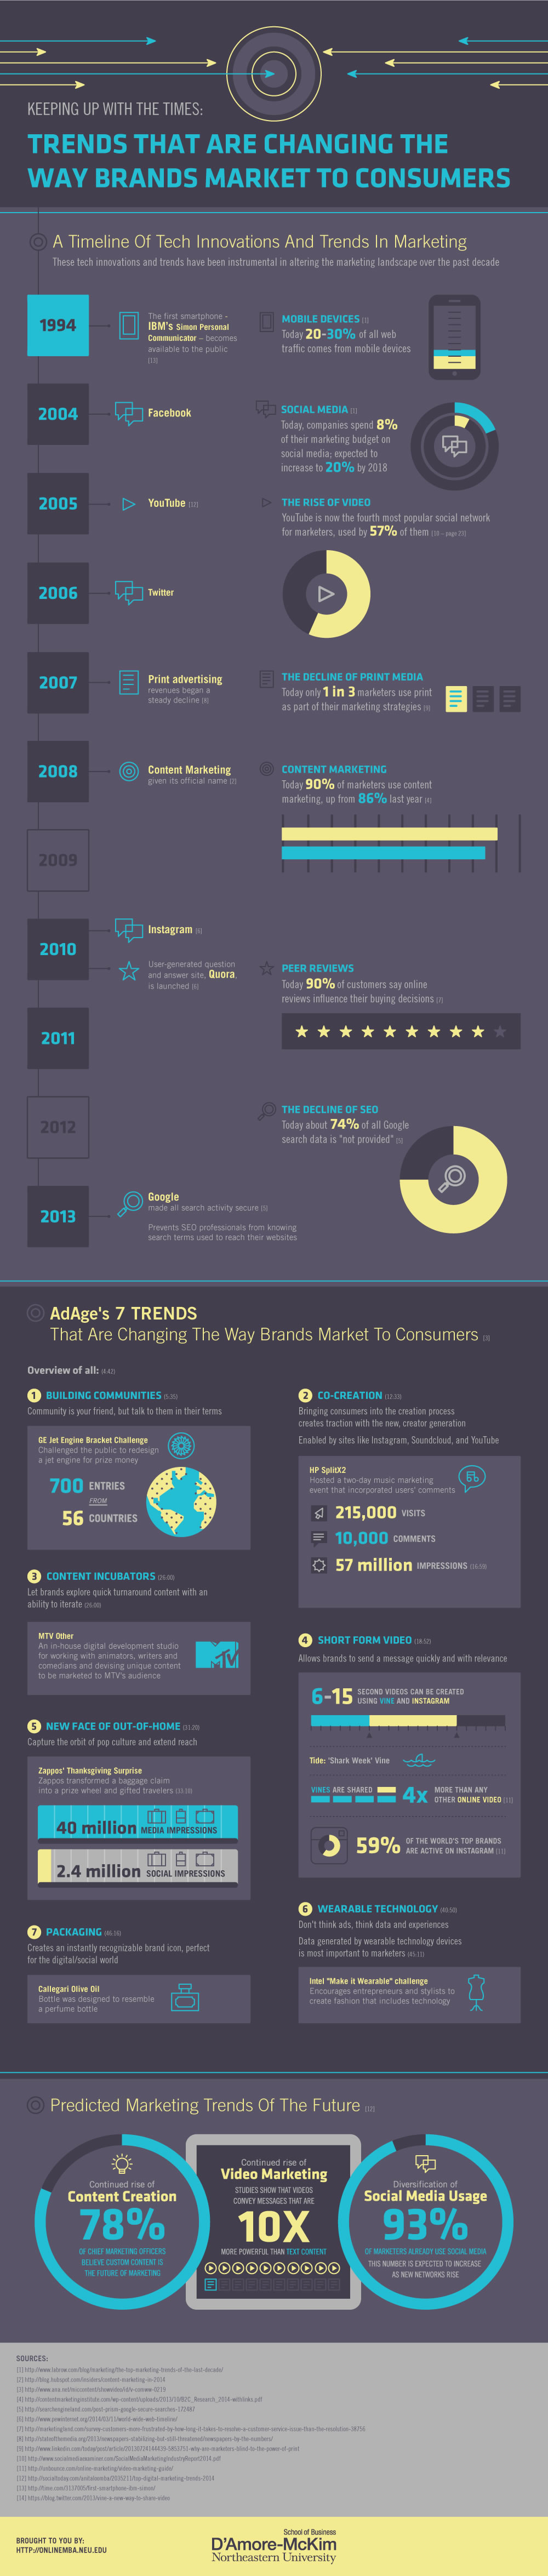 Trends That Are Changing The Way Brands Market To Consumers - Image 1